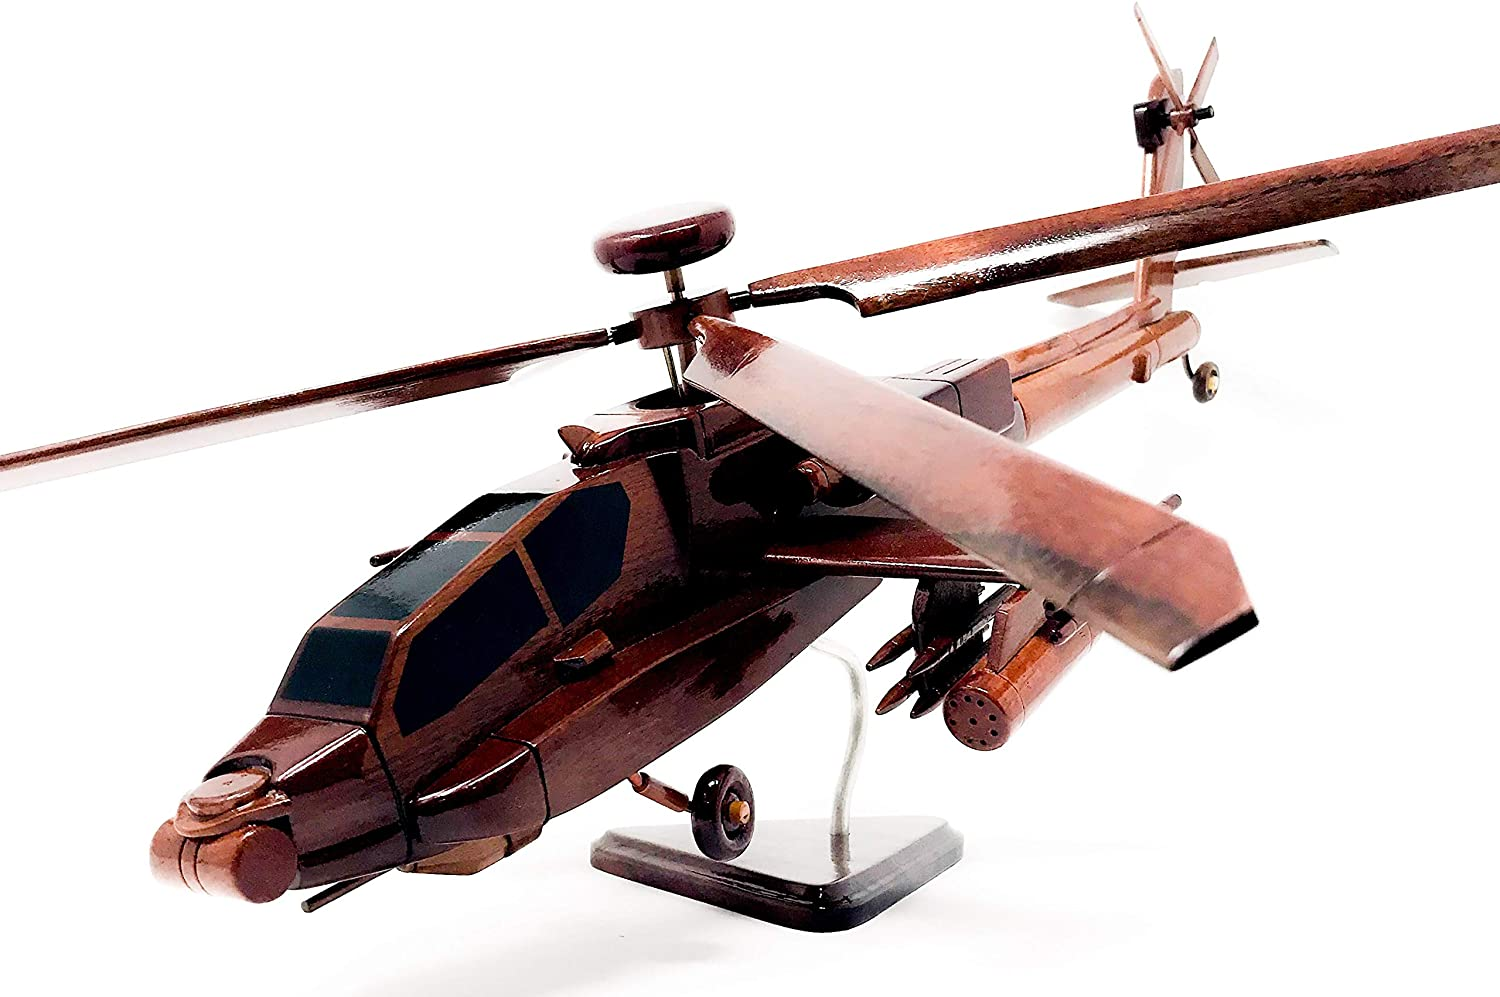 AH-64 Apache Helicopter Wood Model